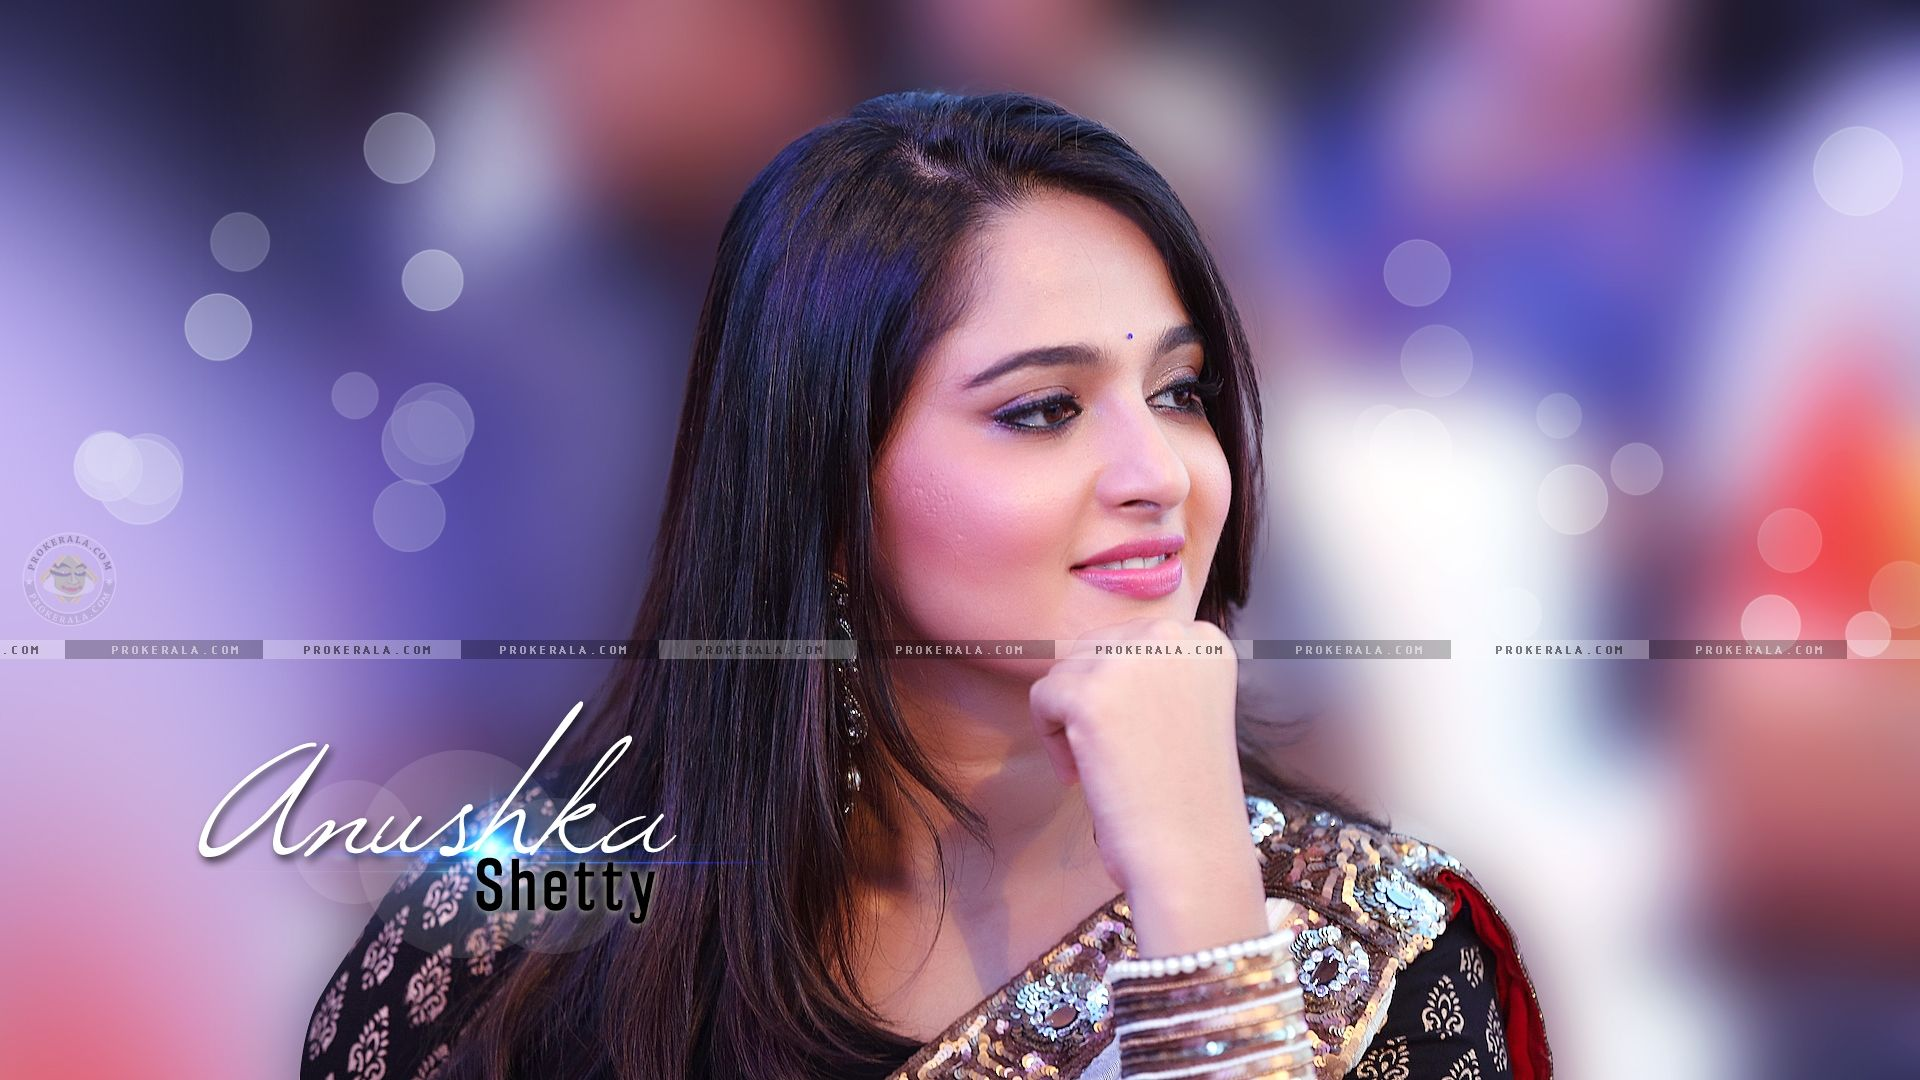 Bollywood Actress Wallpapers Hd Free Download 49 Find: Anushka Shetty Bollywood Actress Wallpapers Download FREE